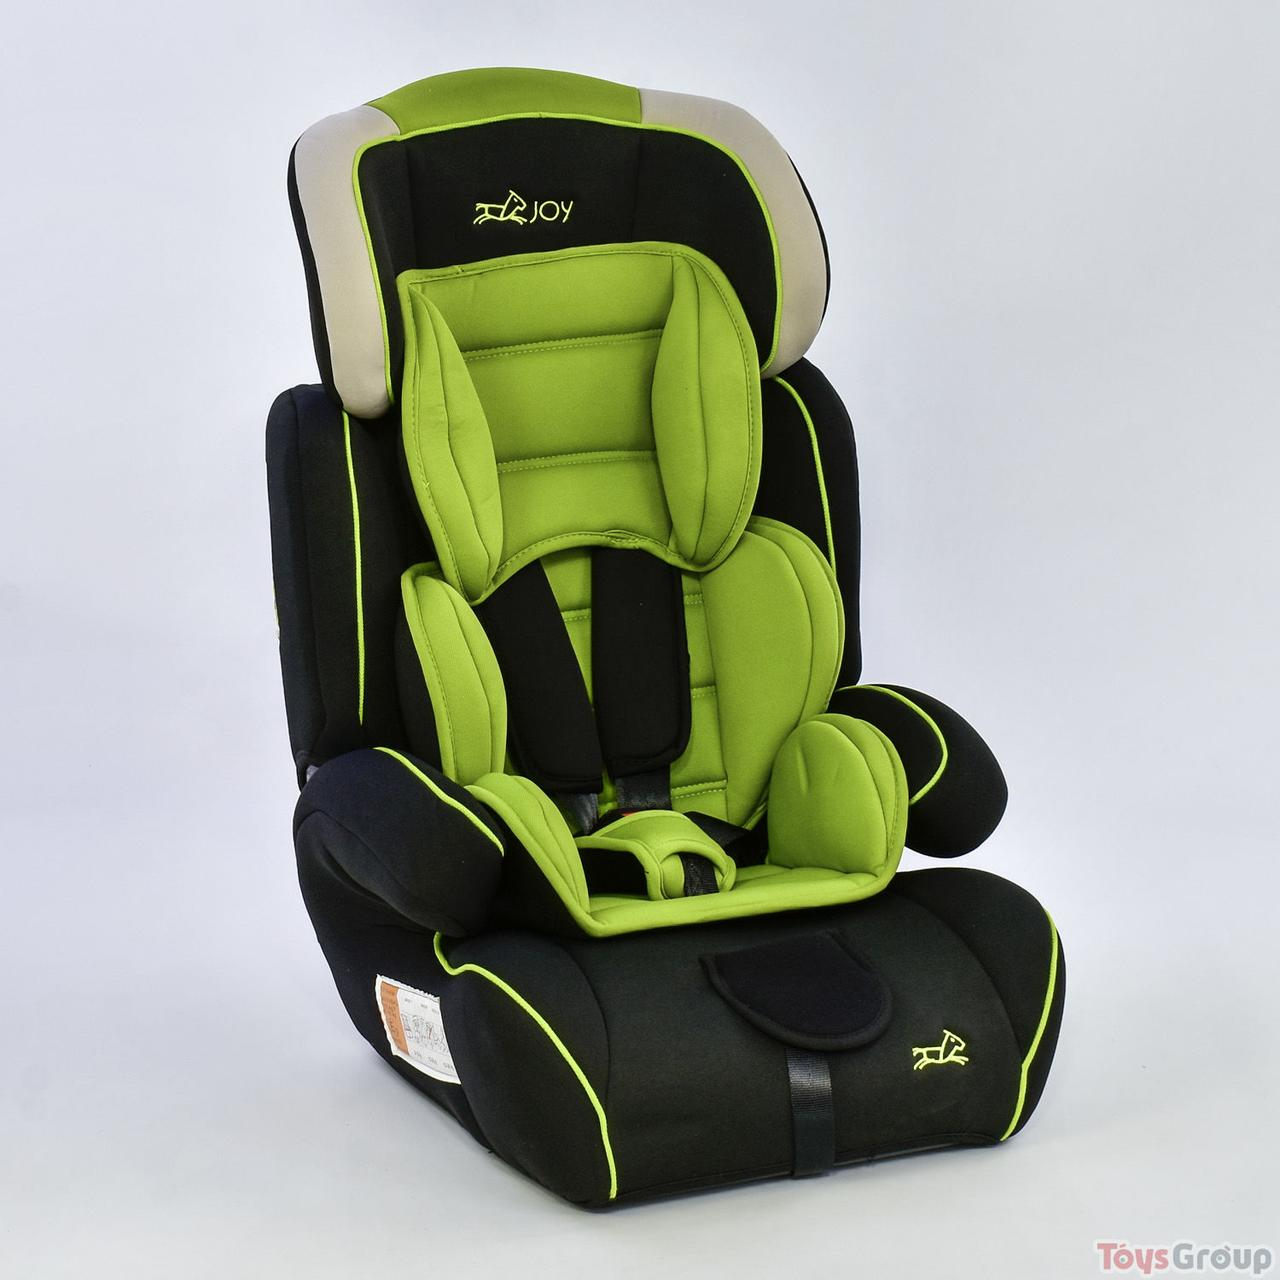 Автокресло JOY 8888 (4) LIGHT GREEN